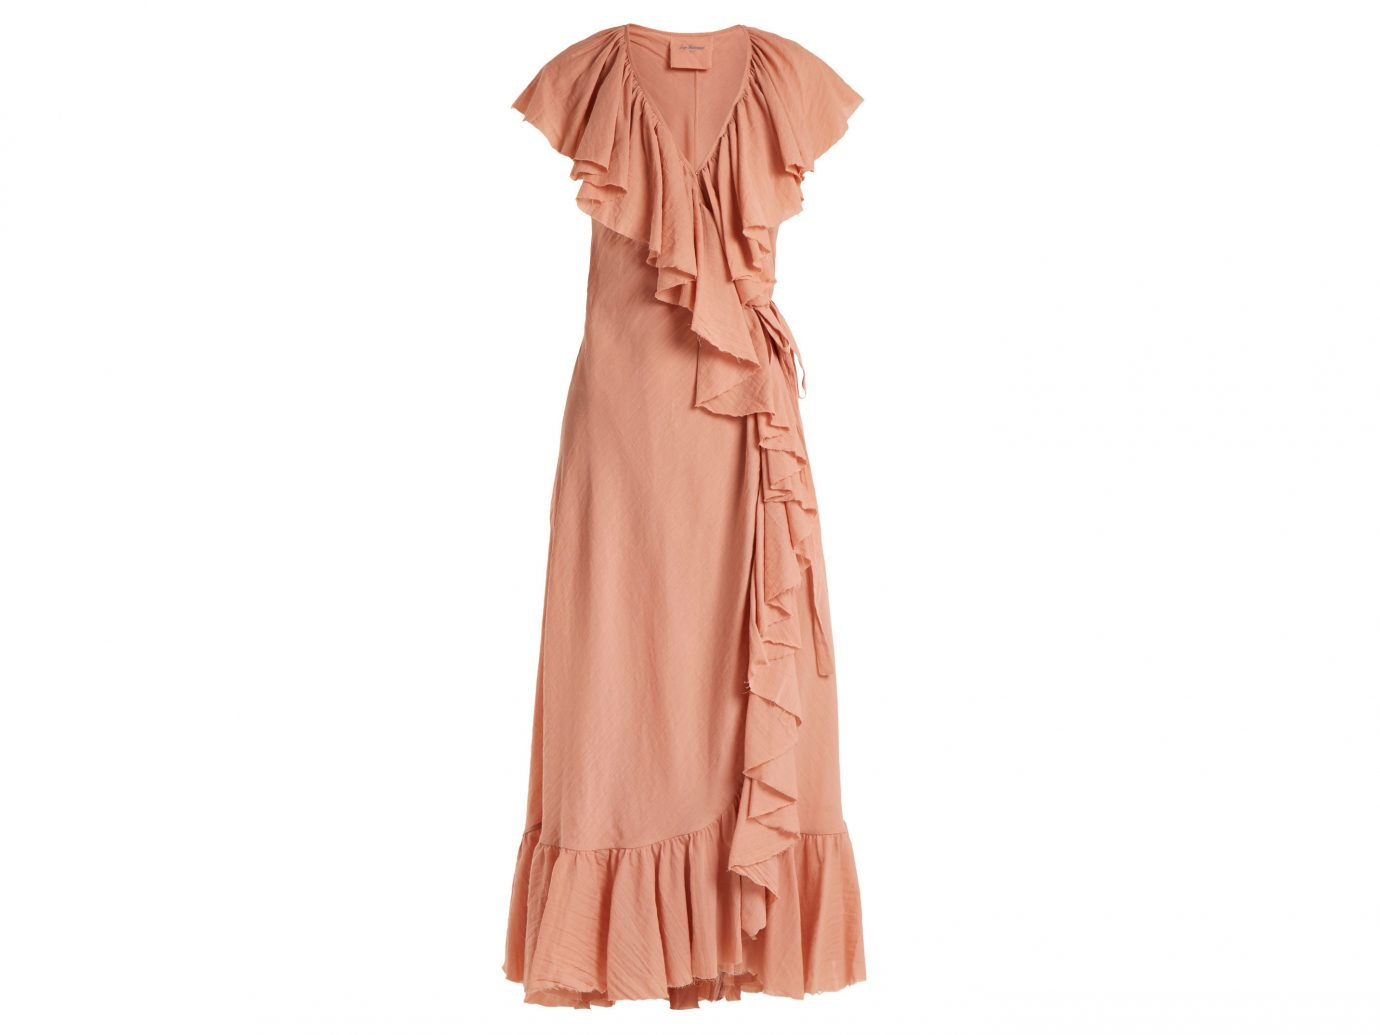 Style + Design Travel Shop clothing day dress dress shoulder peach joint ruffle gown cocktail dress neck fashion model